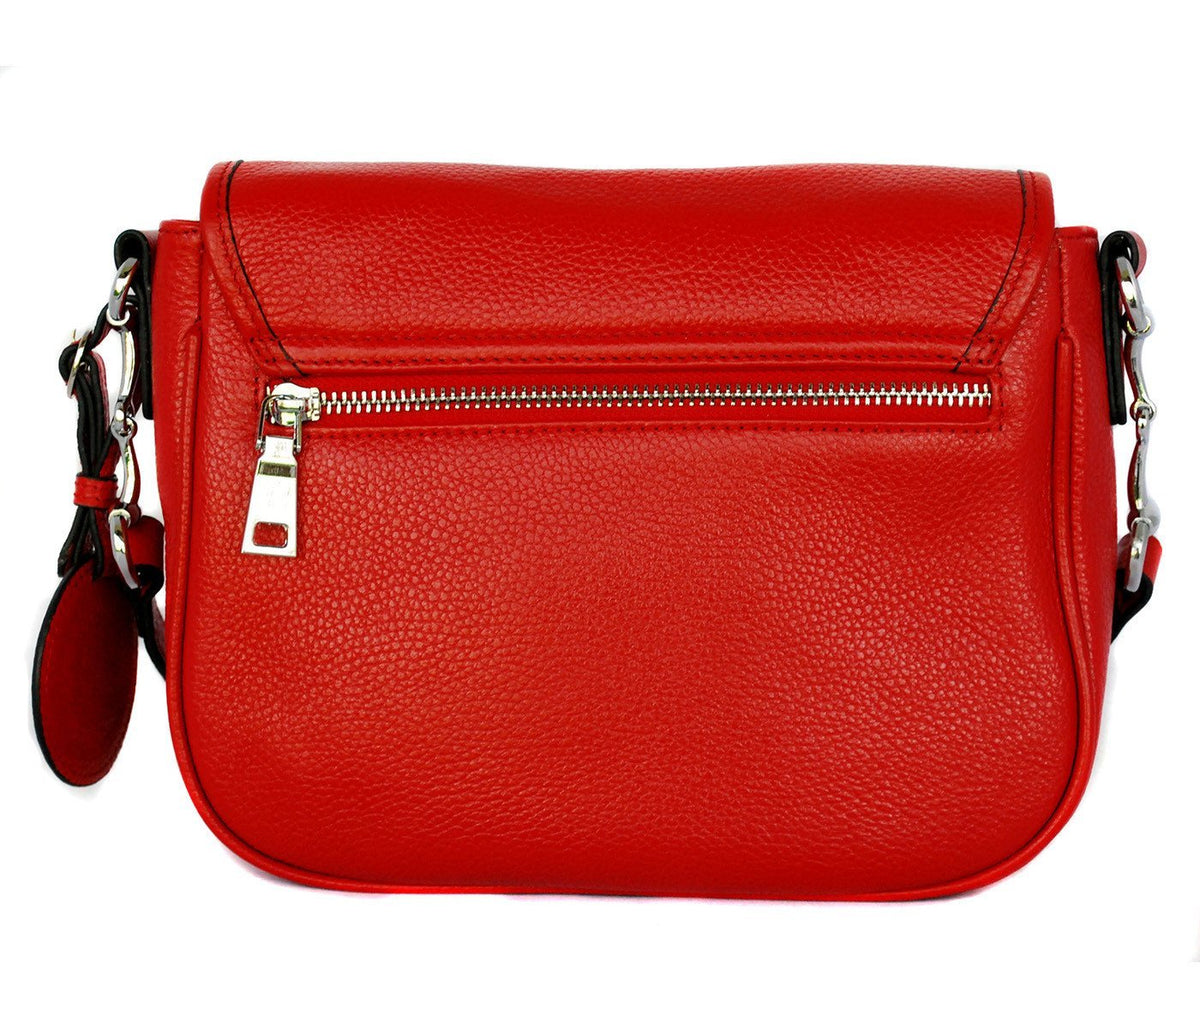 Tucker Tweed Leather Handbags The Camden Crossbody: Signature